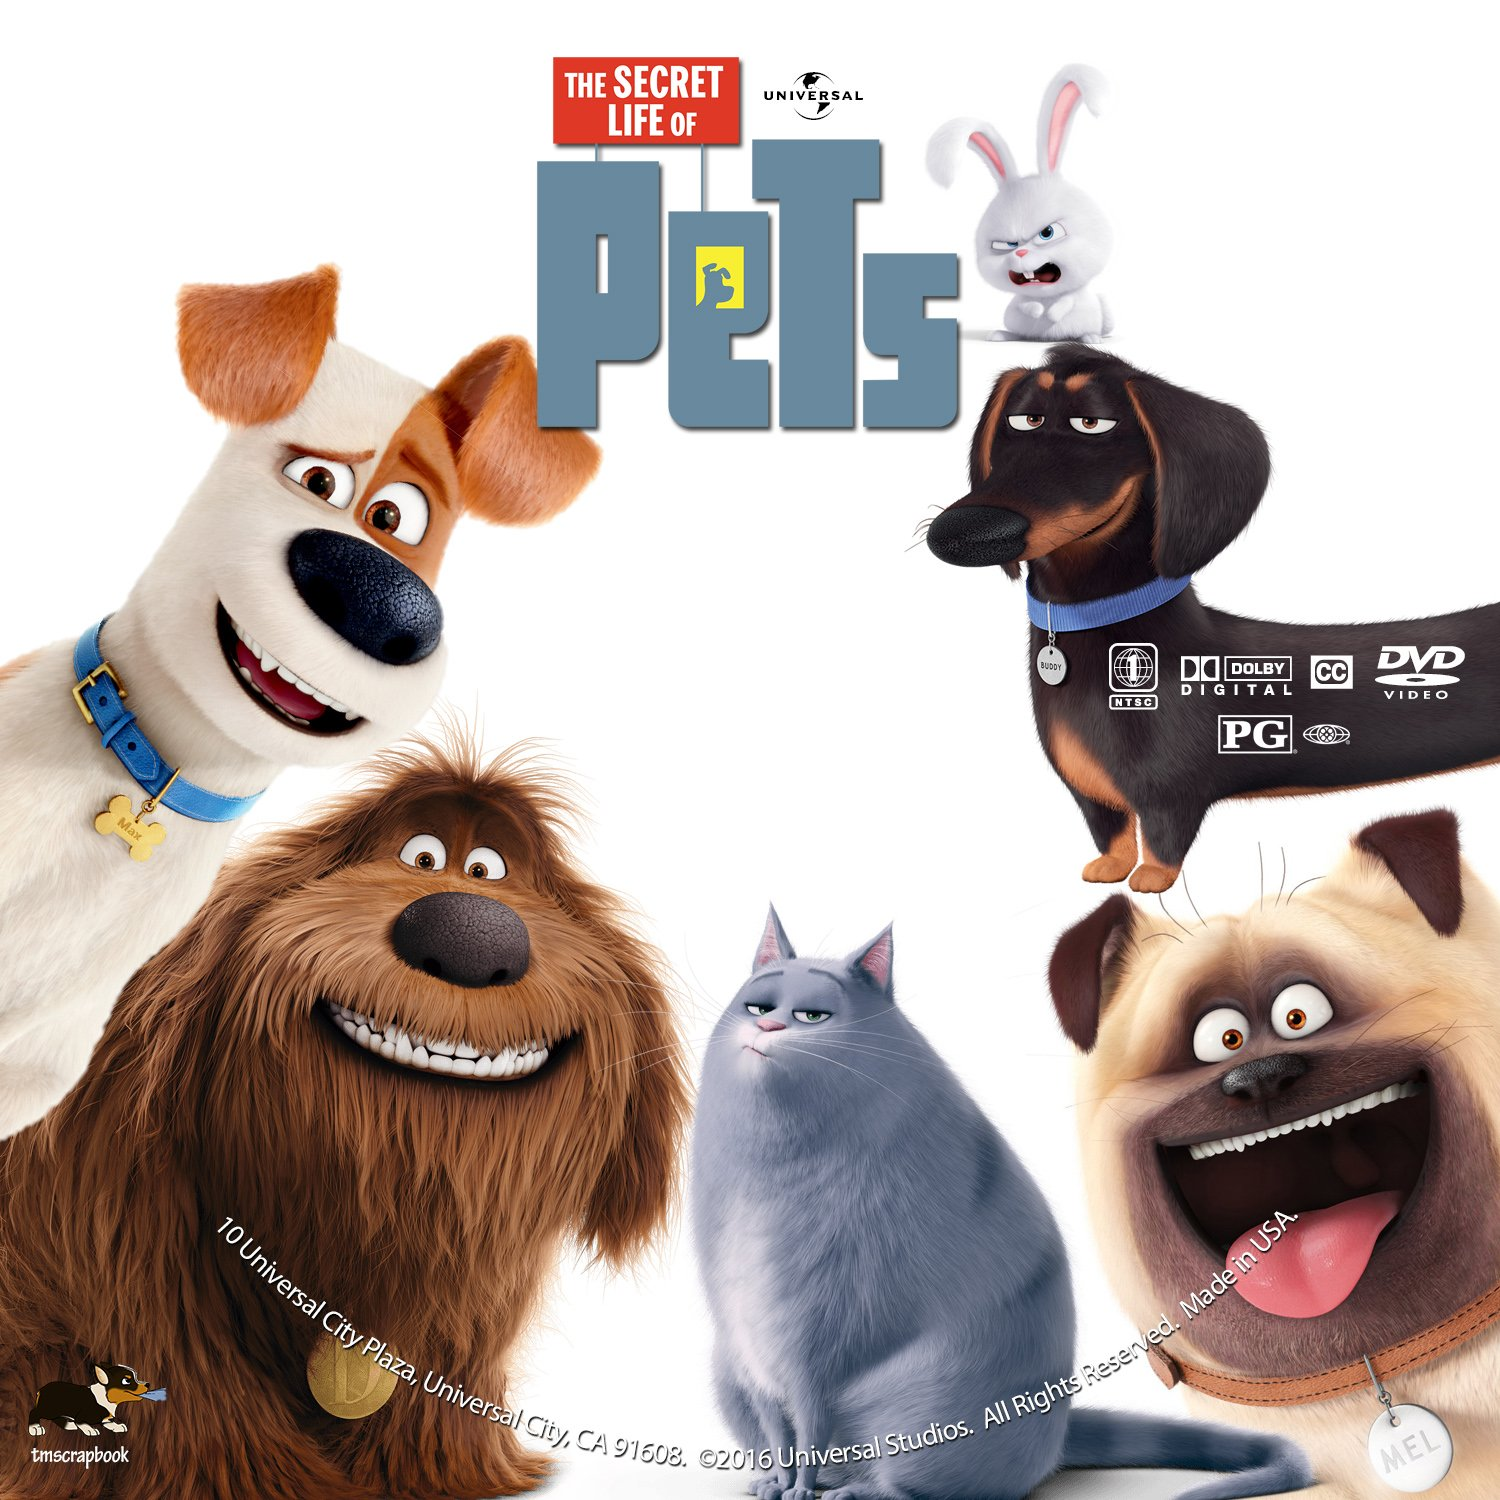 The Secret Life Of Pets 2016 R1 Custom V2 Cover Label Dvd Covers And Labels